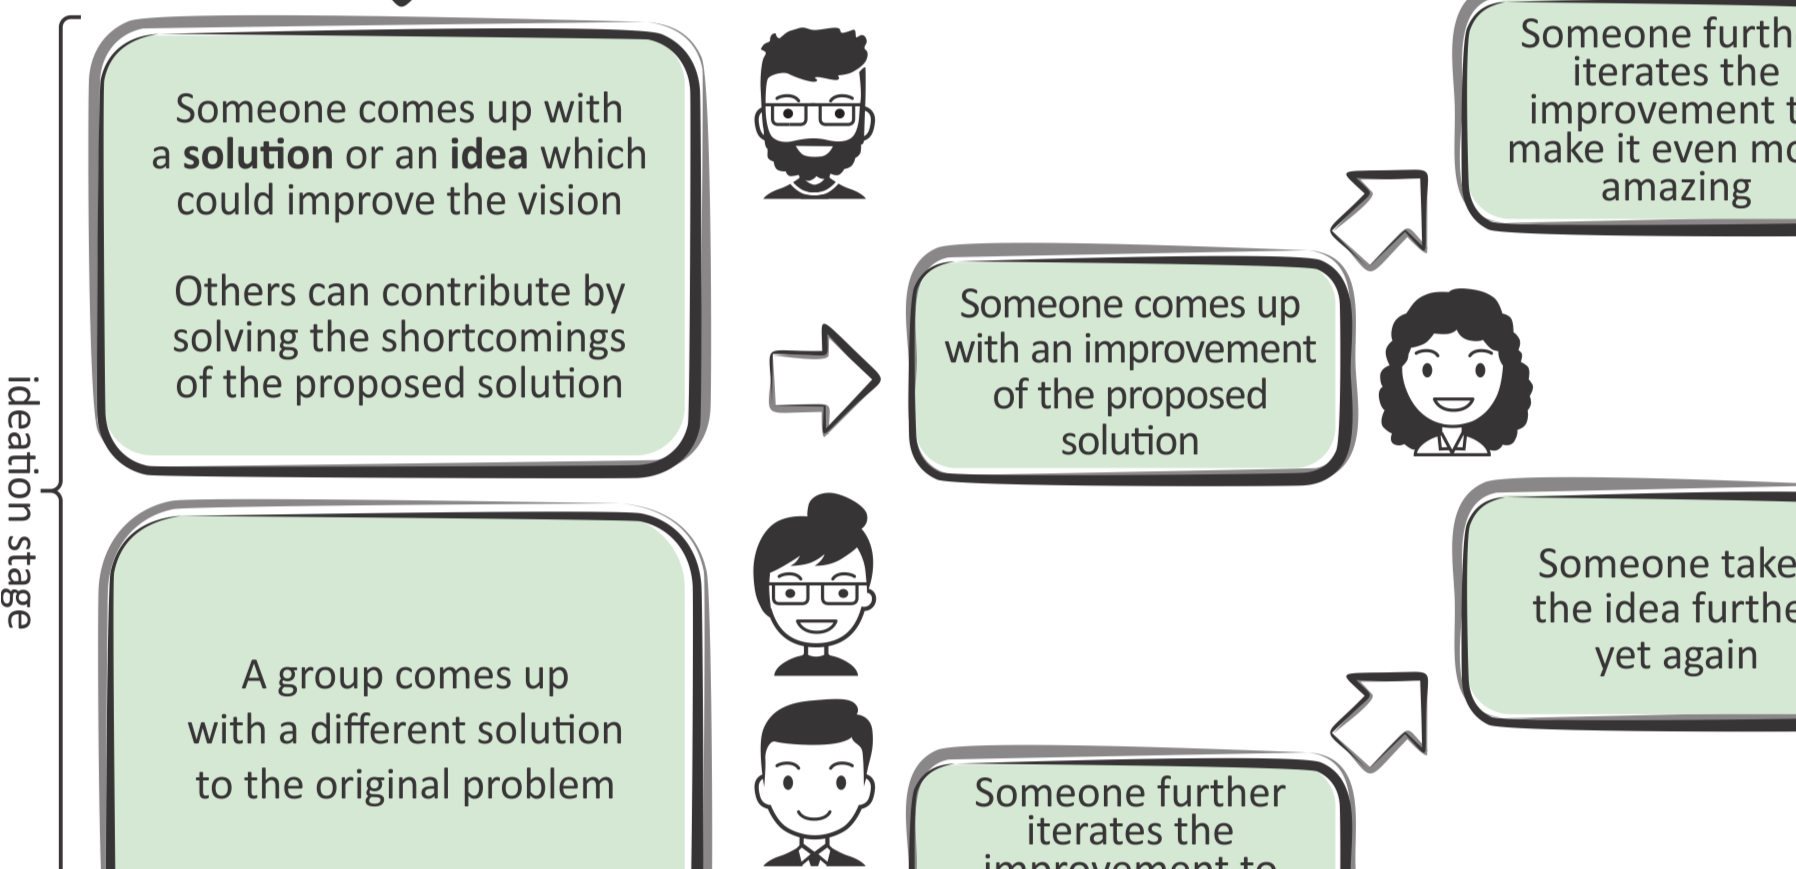 Feedback and feature suggestions for the Brainstorming platform